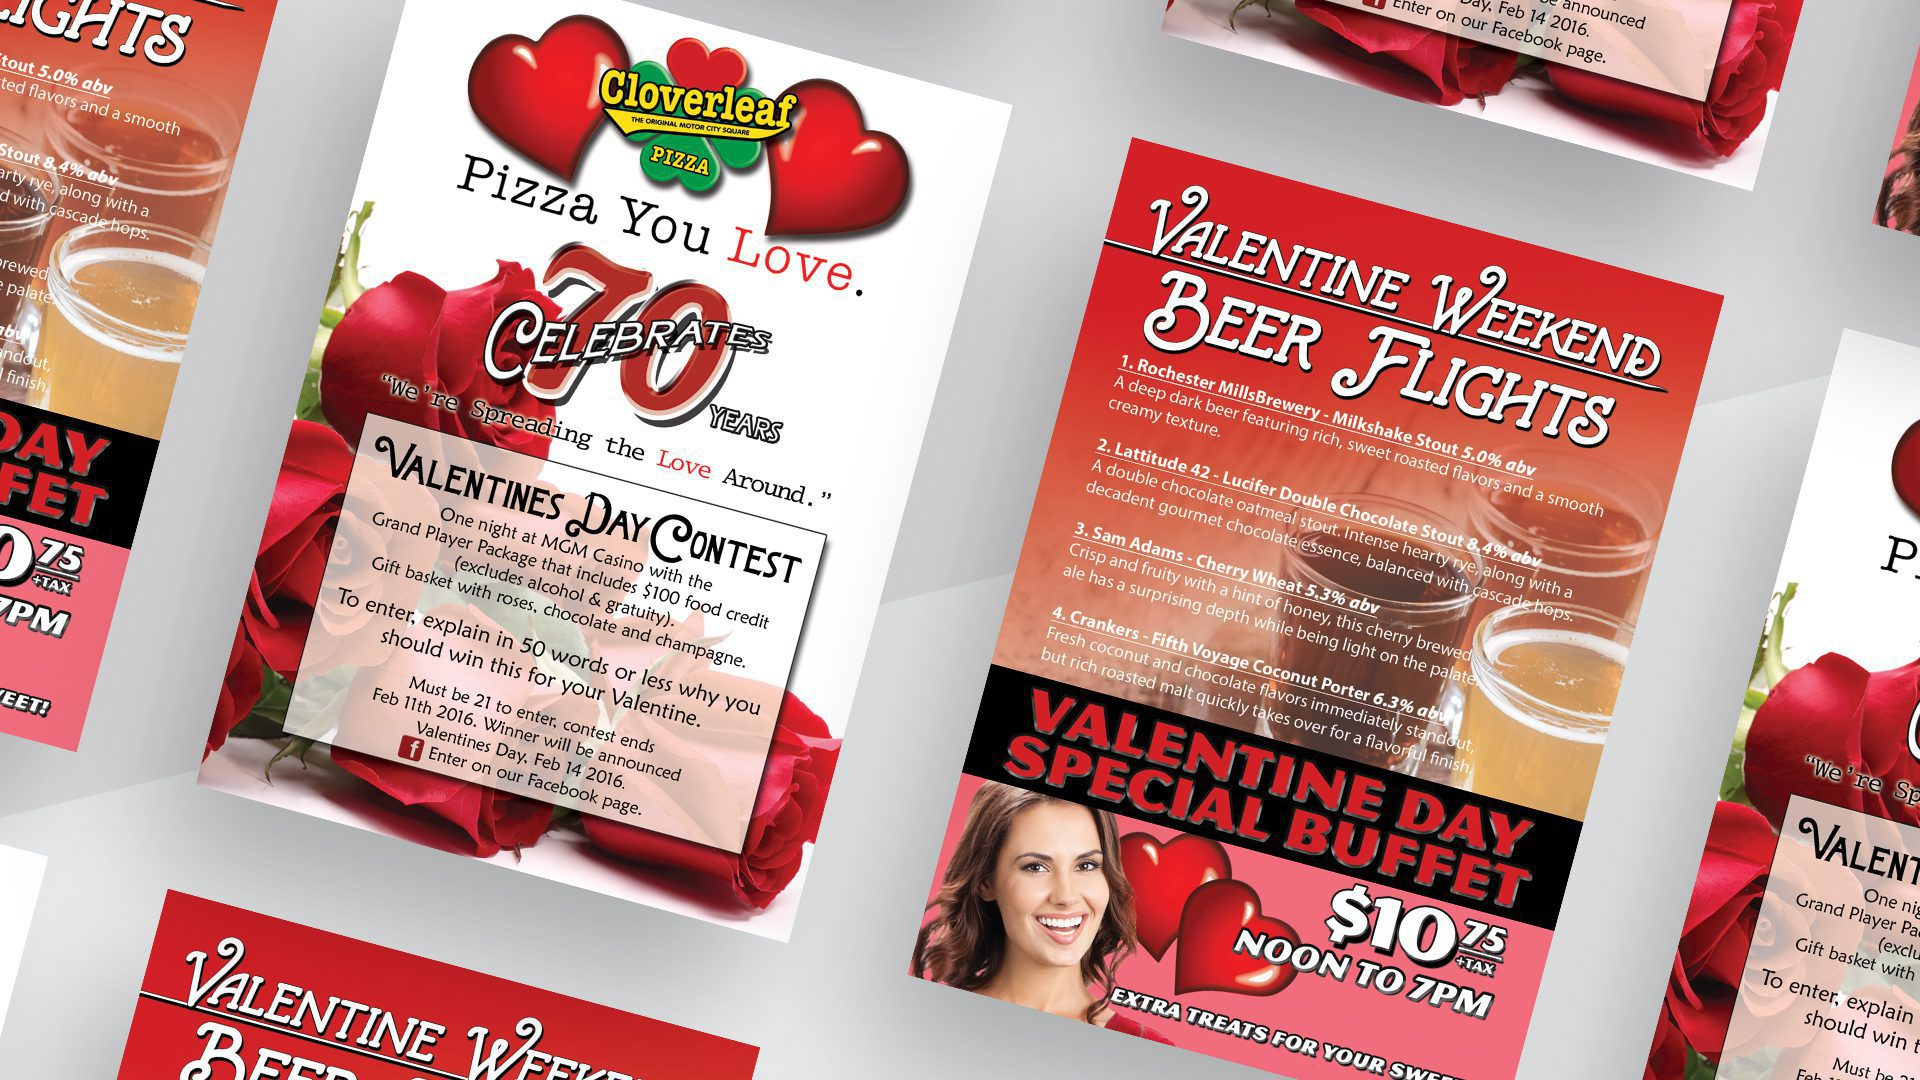 Pizza Promotional Flyer (4)